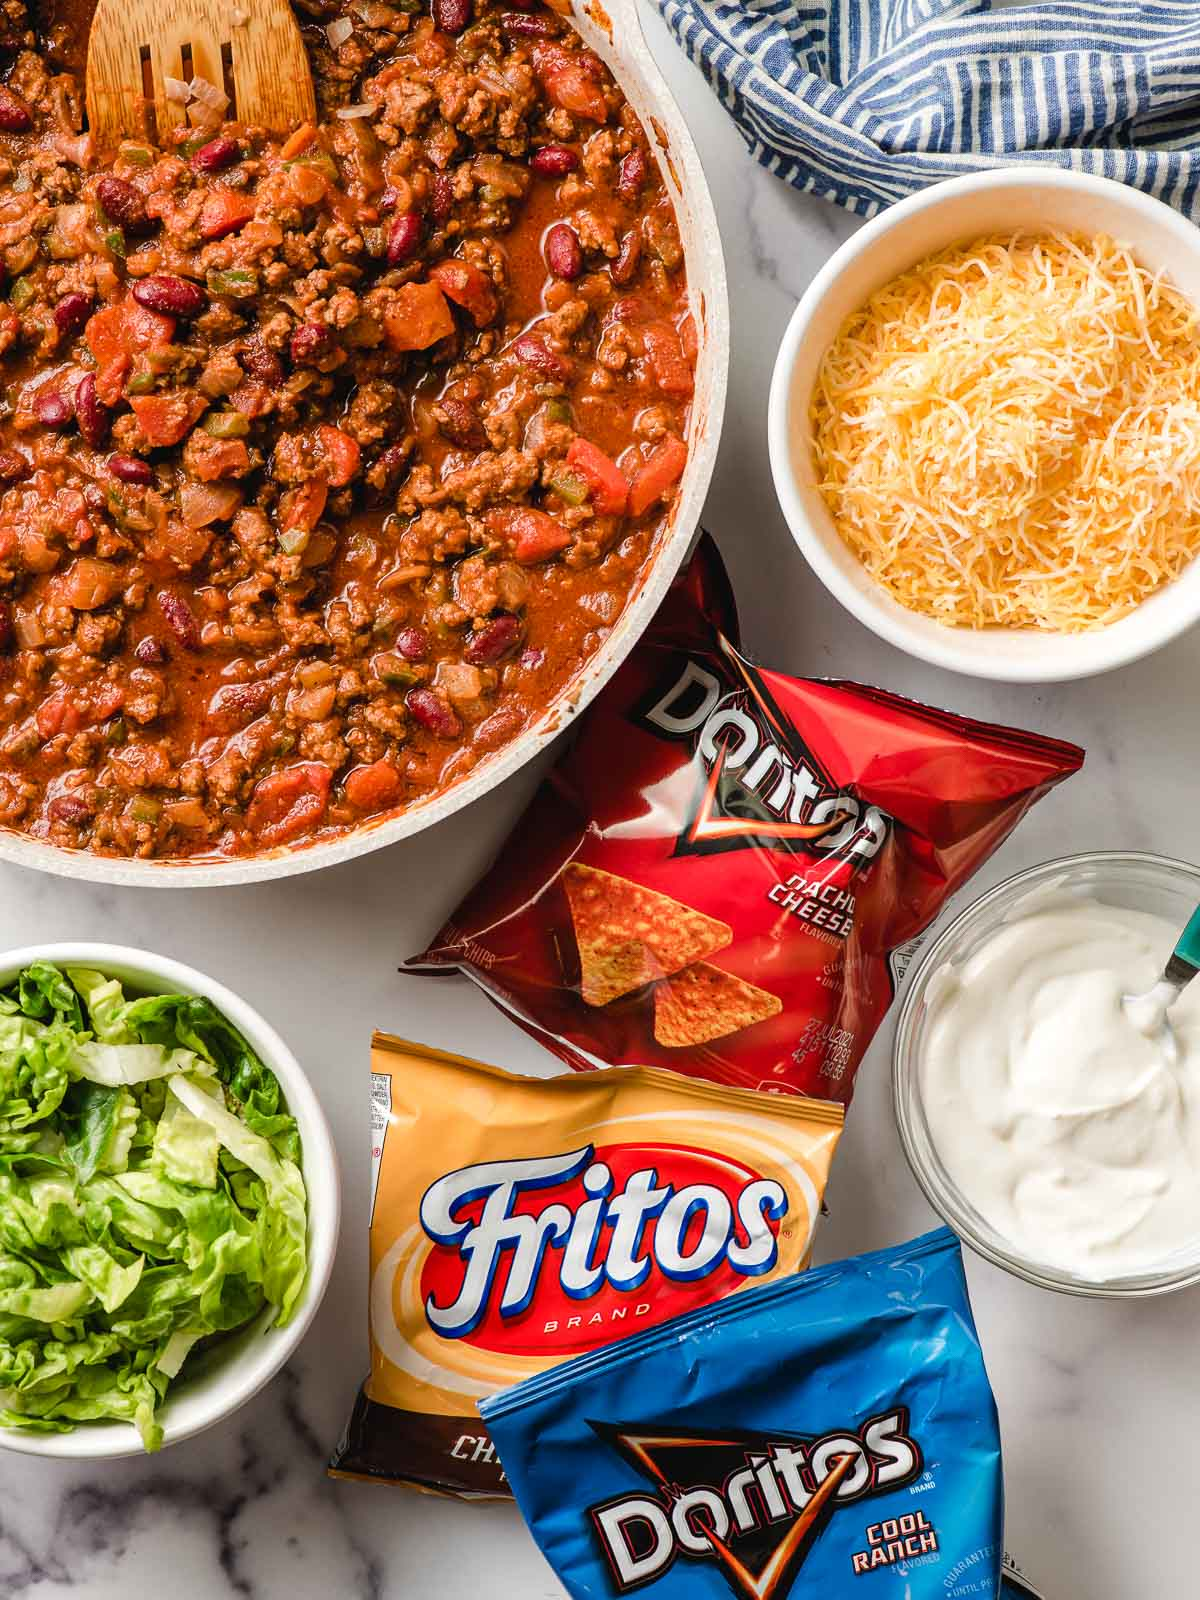 Meat mixture for Walking Tacos with bags of Doritos and Fritos, plus bowls of lettuce, cheese, and sour cream on the side.